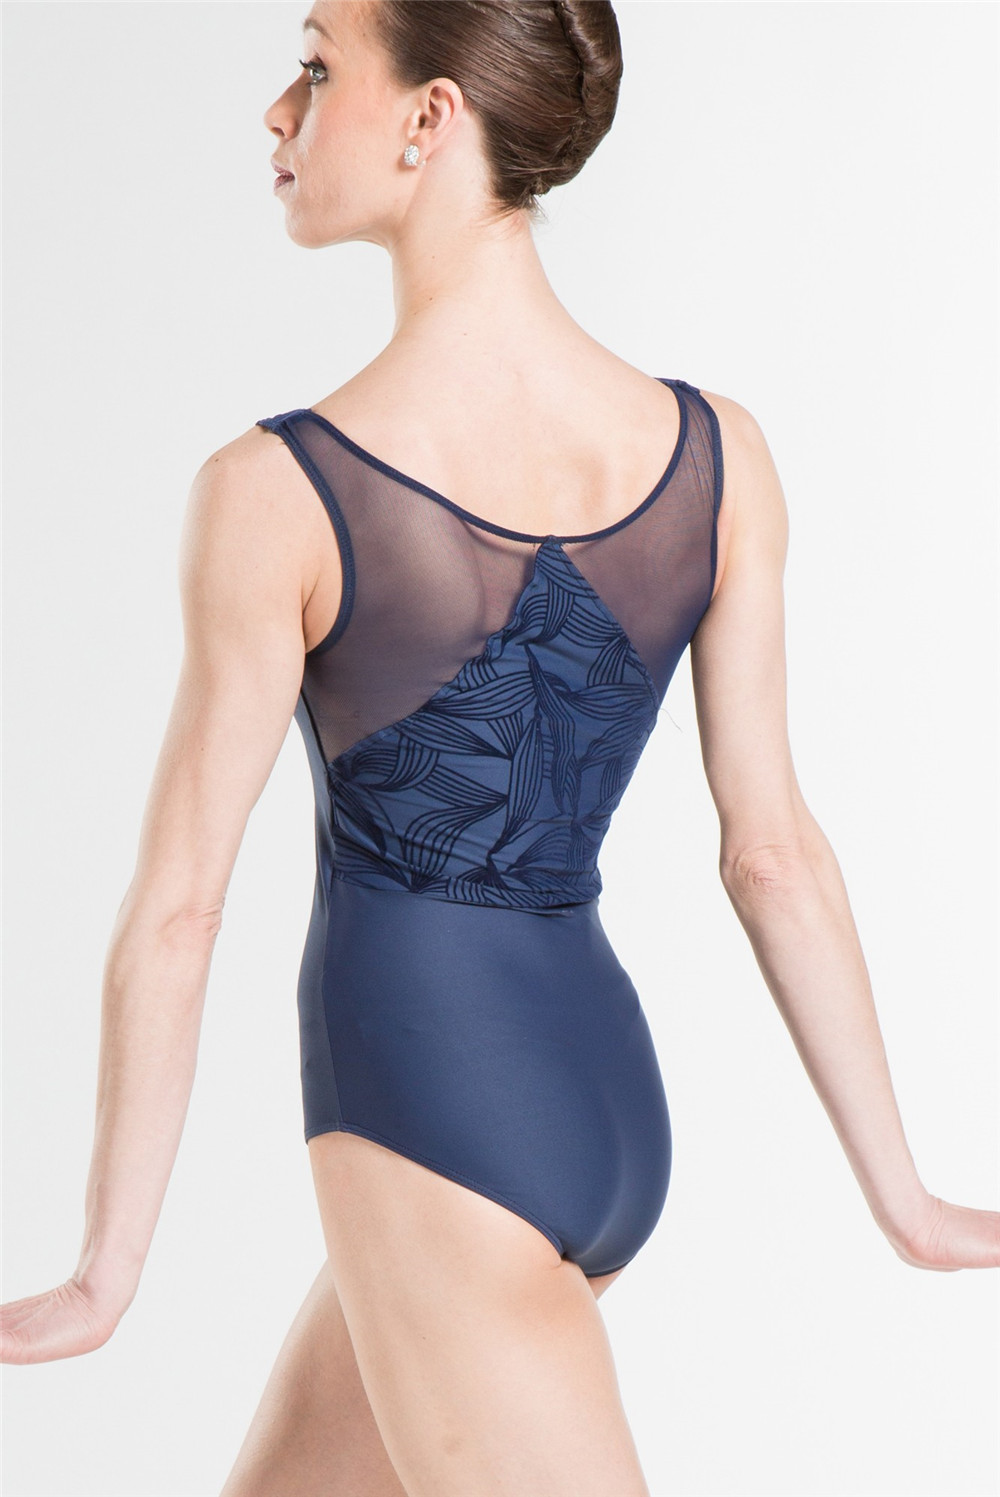 wear moi bethy ballet leotards